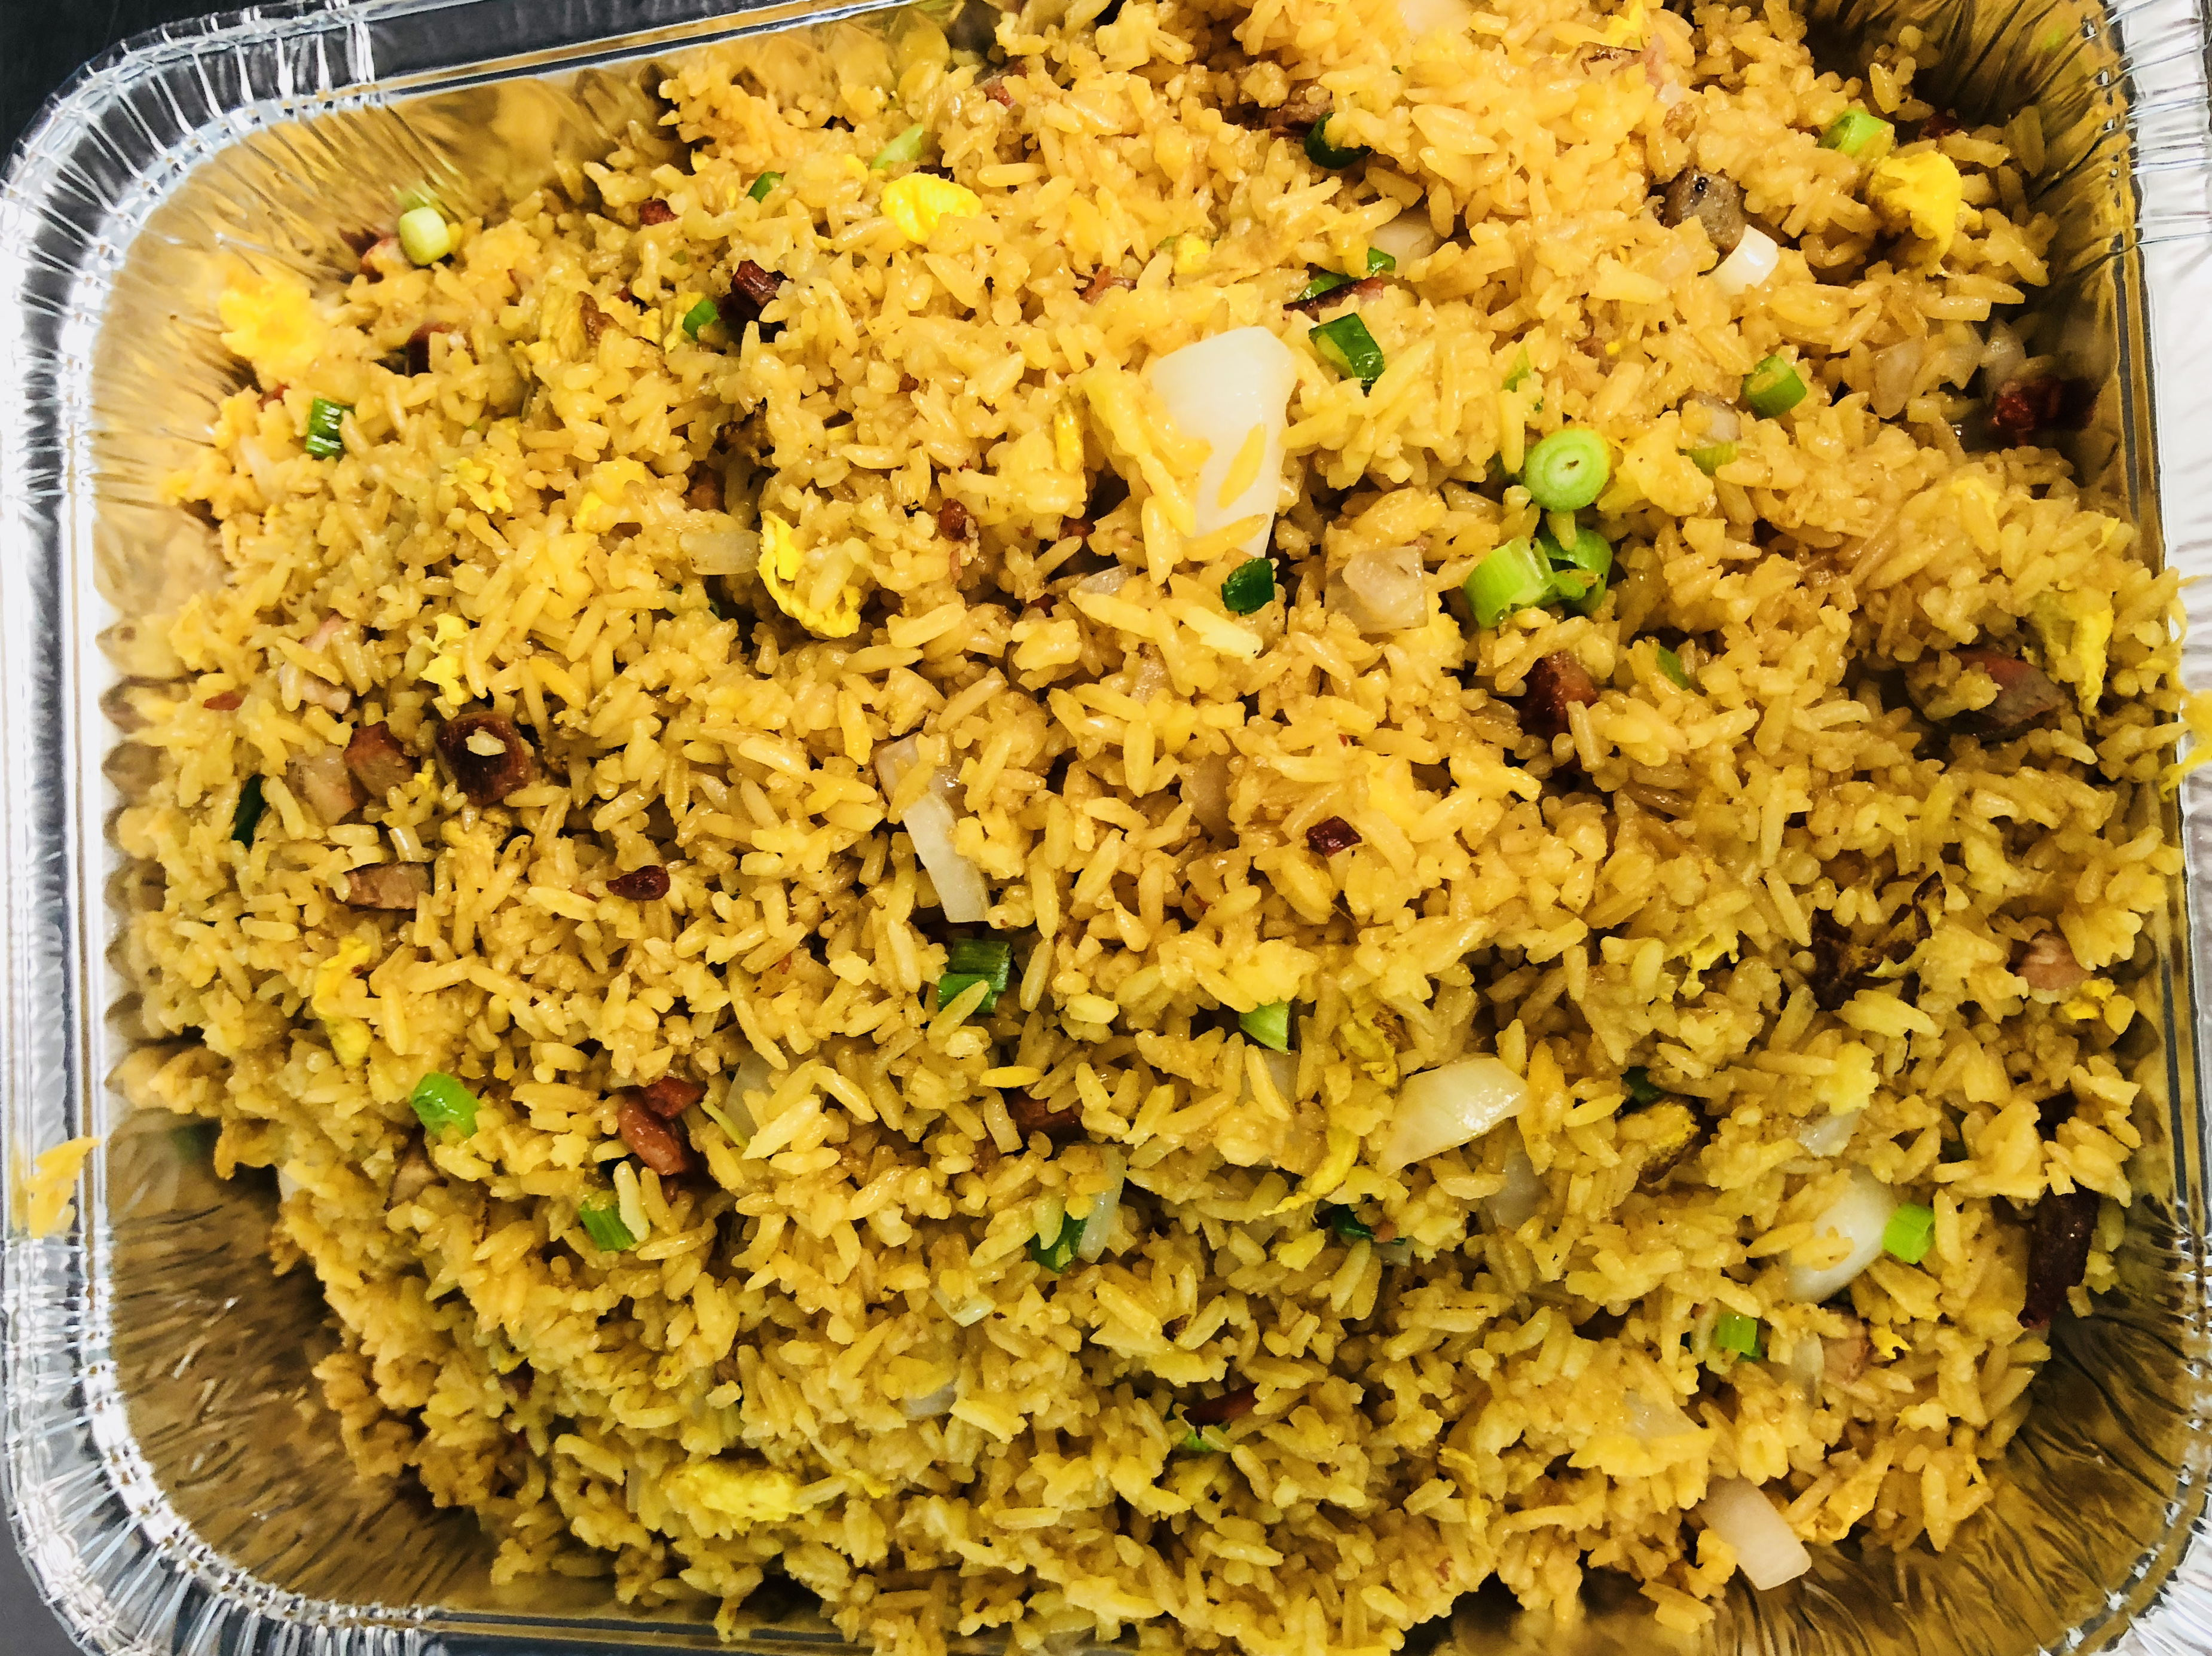 P1. Pork Fried Rice Image